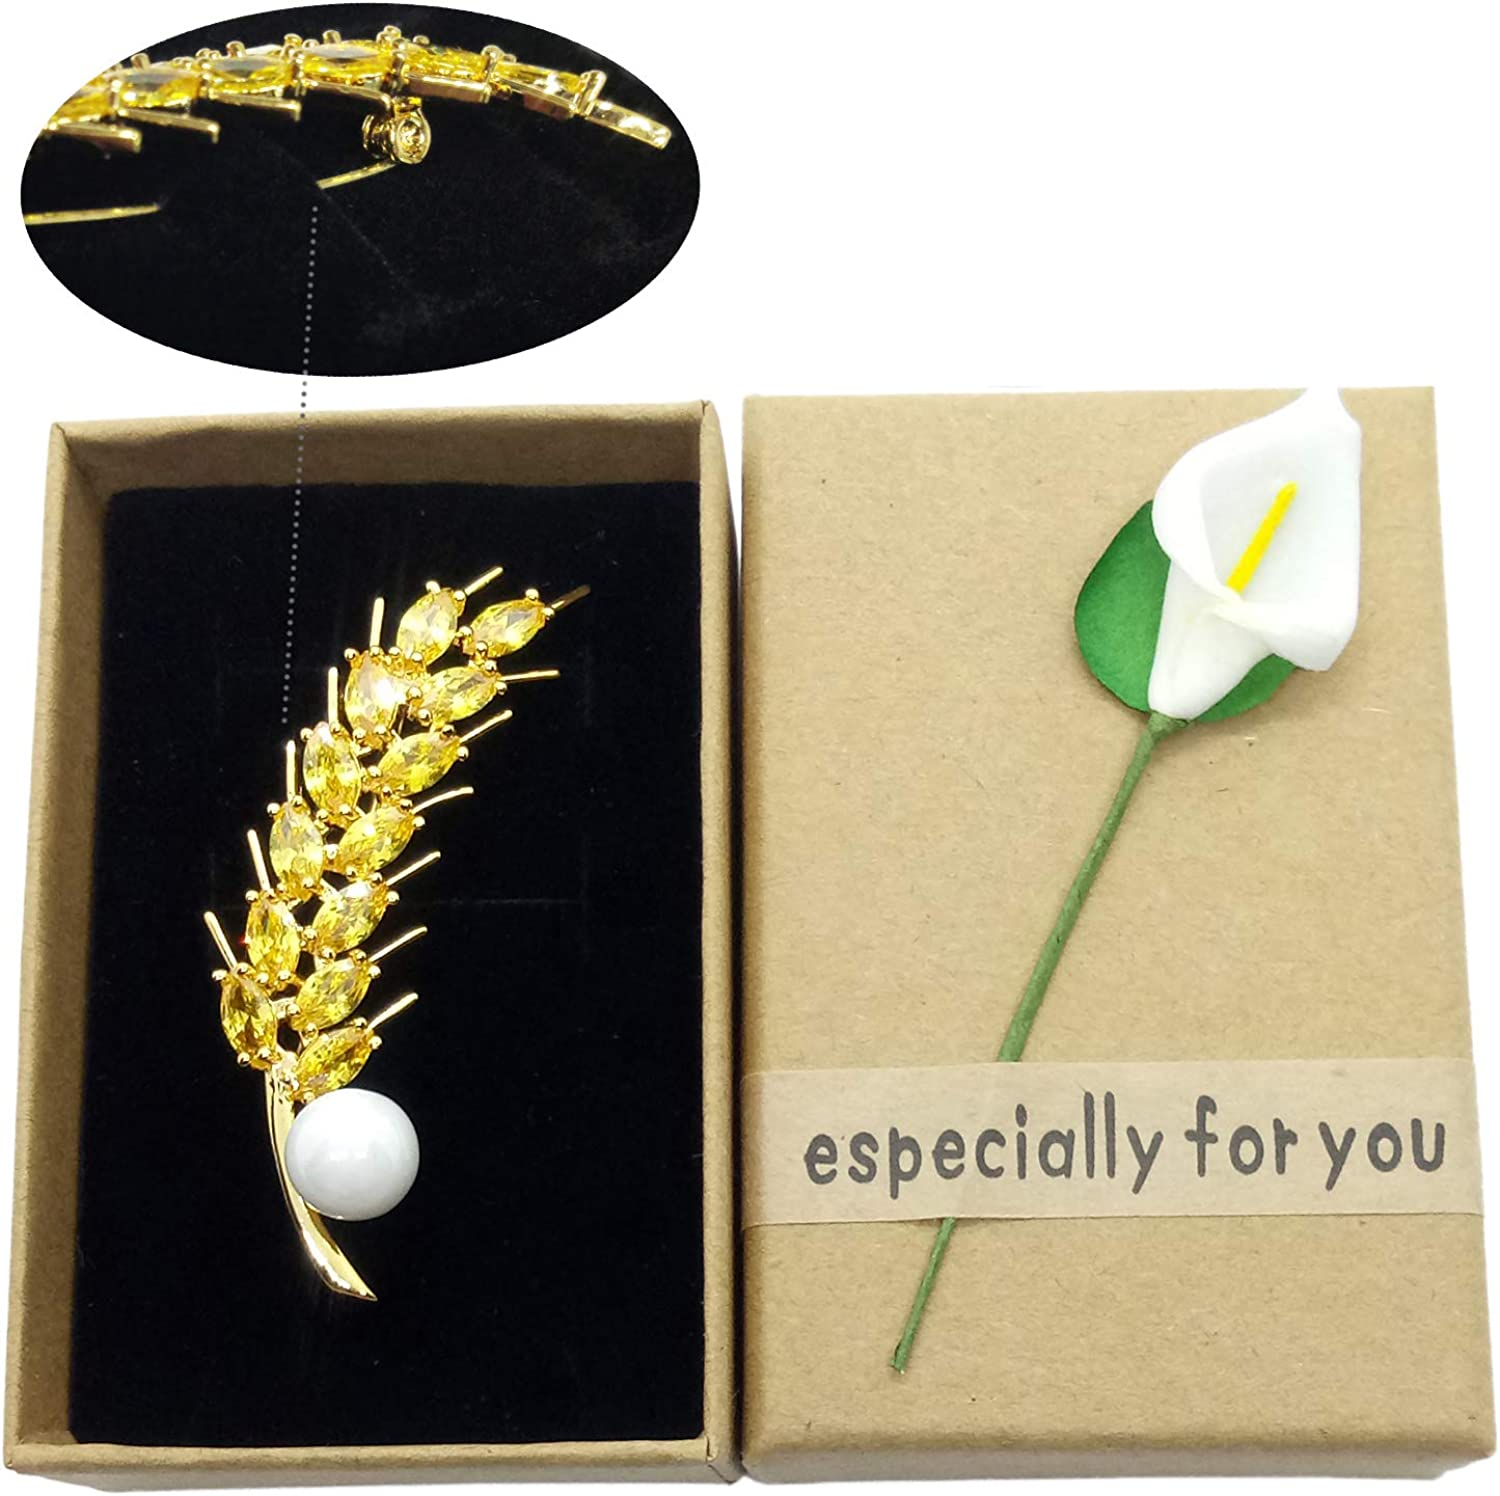 NONOSIZE Bling Bling Wheat Shape Brooch Fine Fashion White Pearl Yellow Crystal Brooch